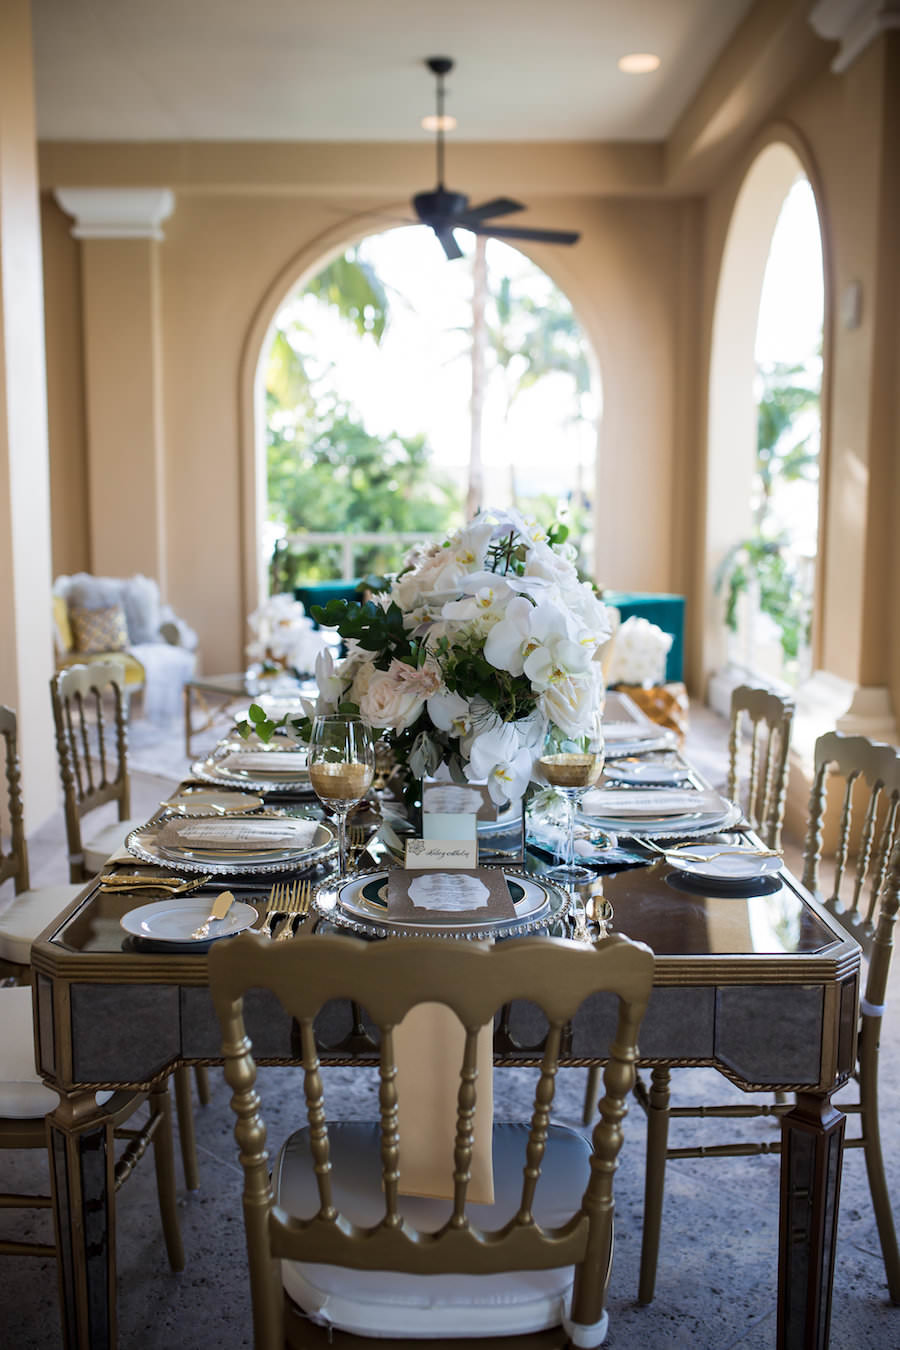 Outdoor Elegant, Sophisticated Vintage Wedding Reception Ideas & Inspiration with Gold Chairs, White Centerpieces | Sarasota Wedding Planner NK Productions